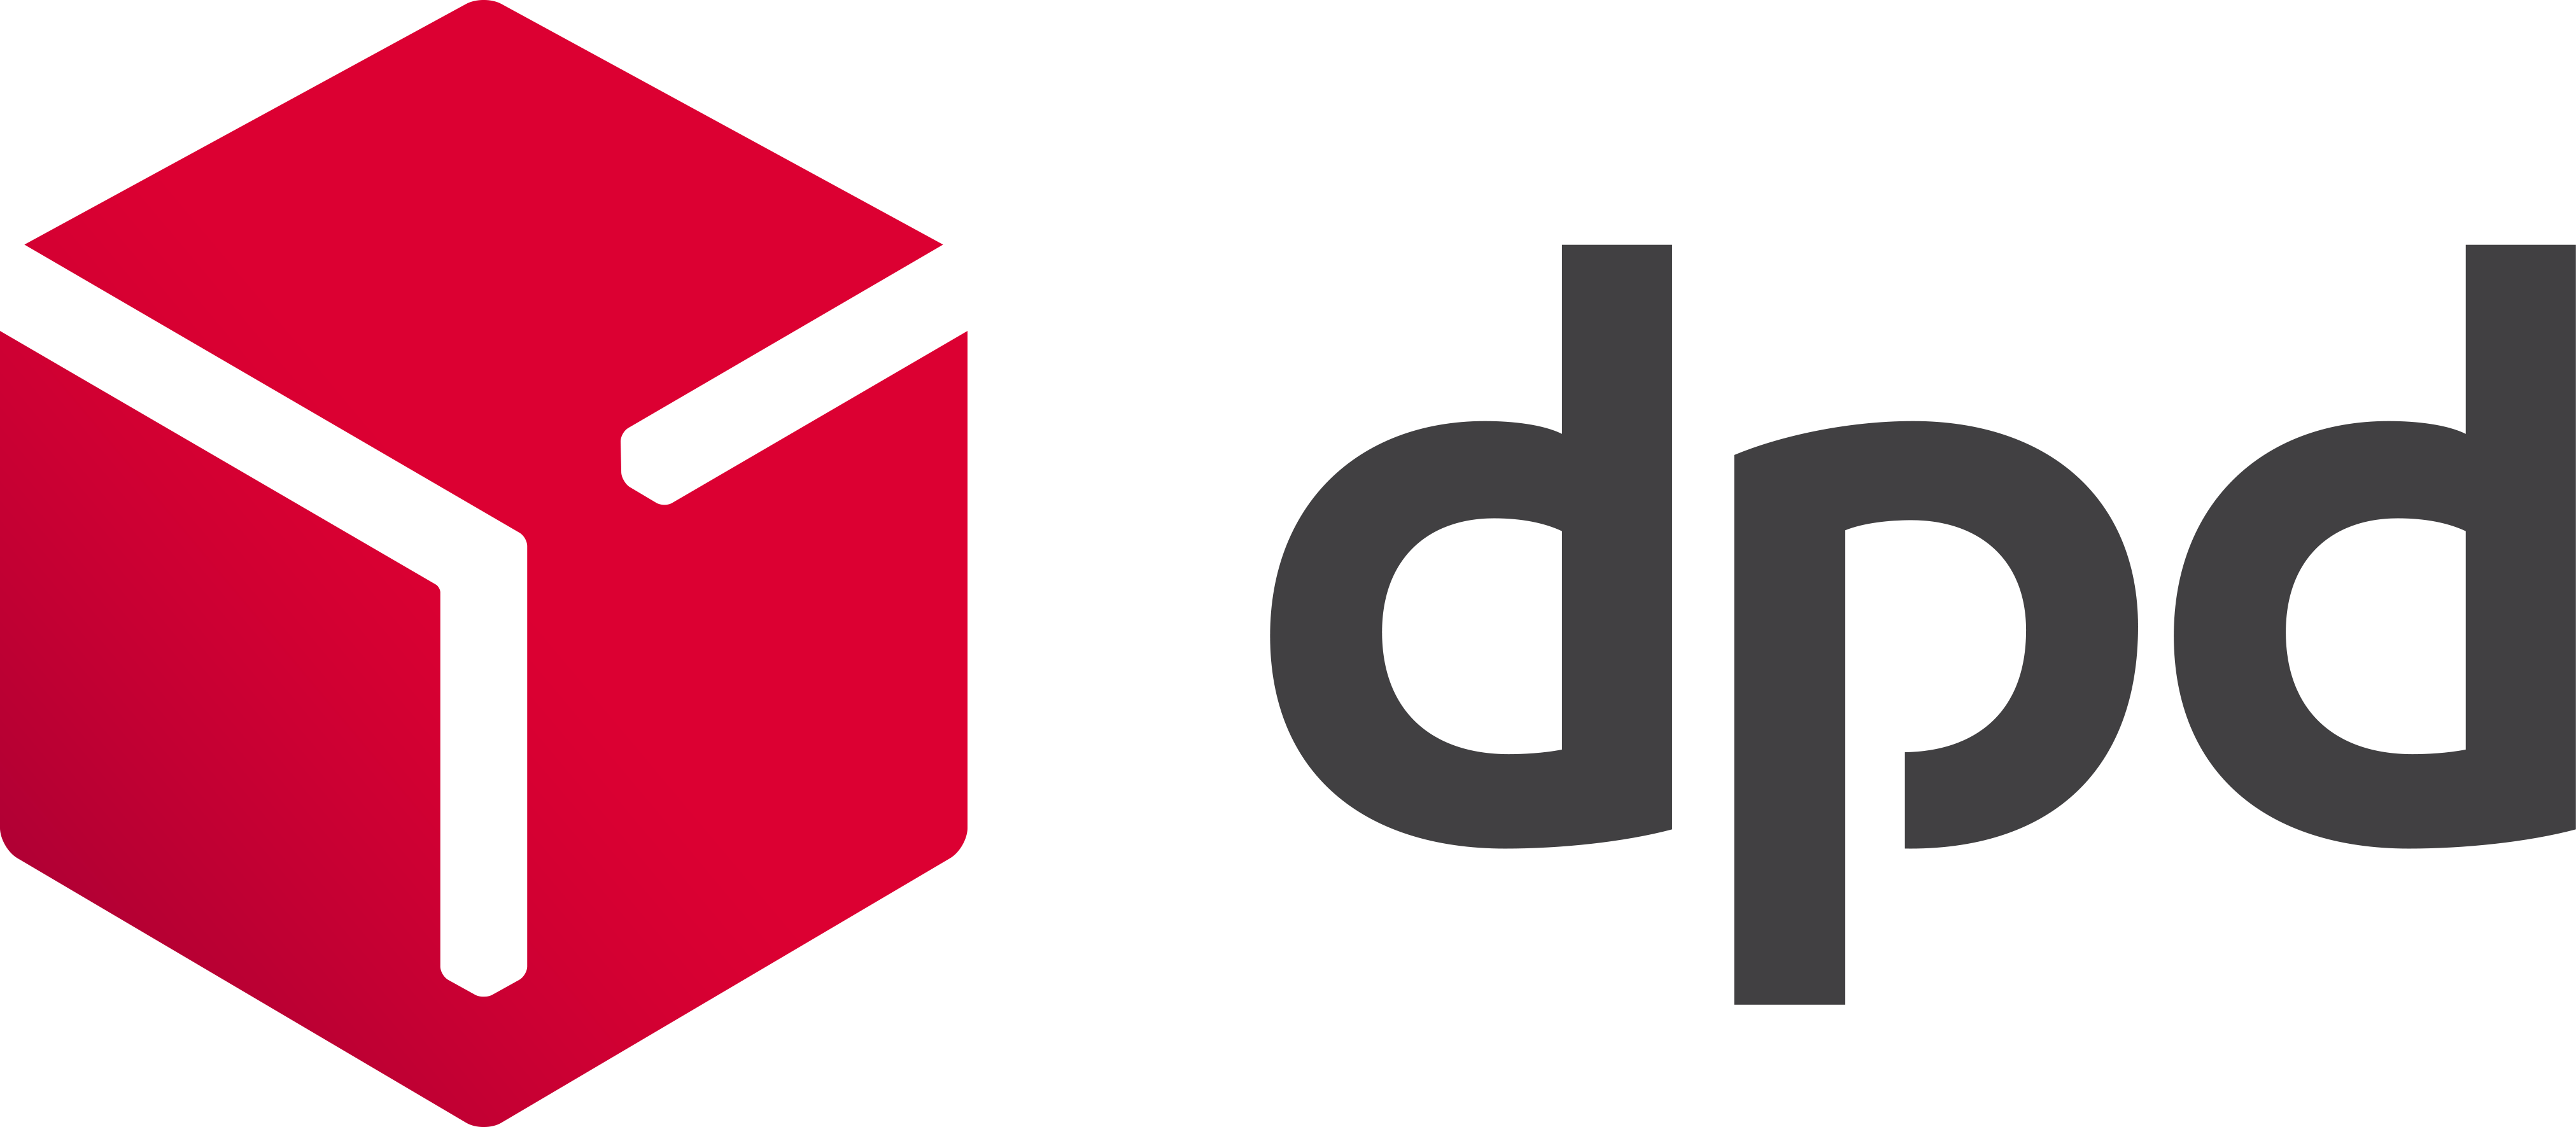 DPD_logo-red-2015(1).png